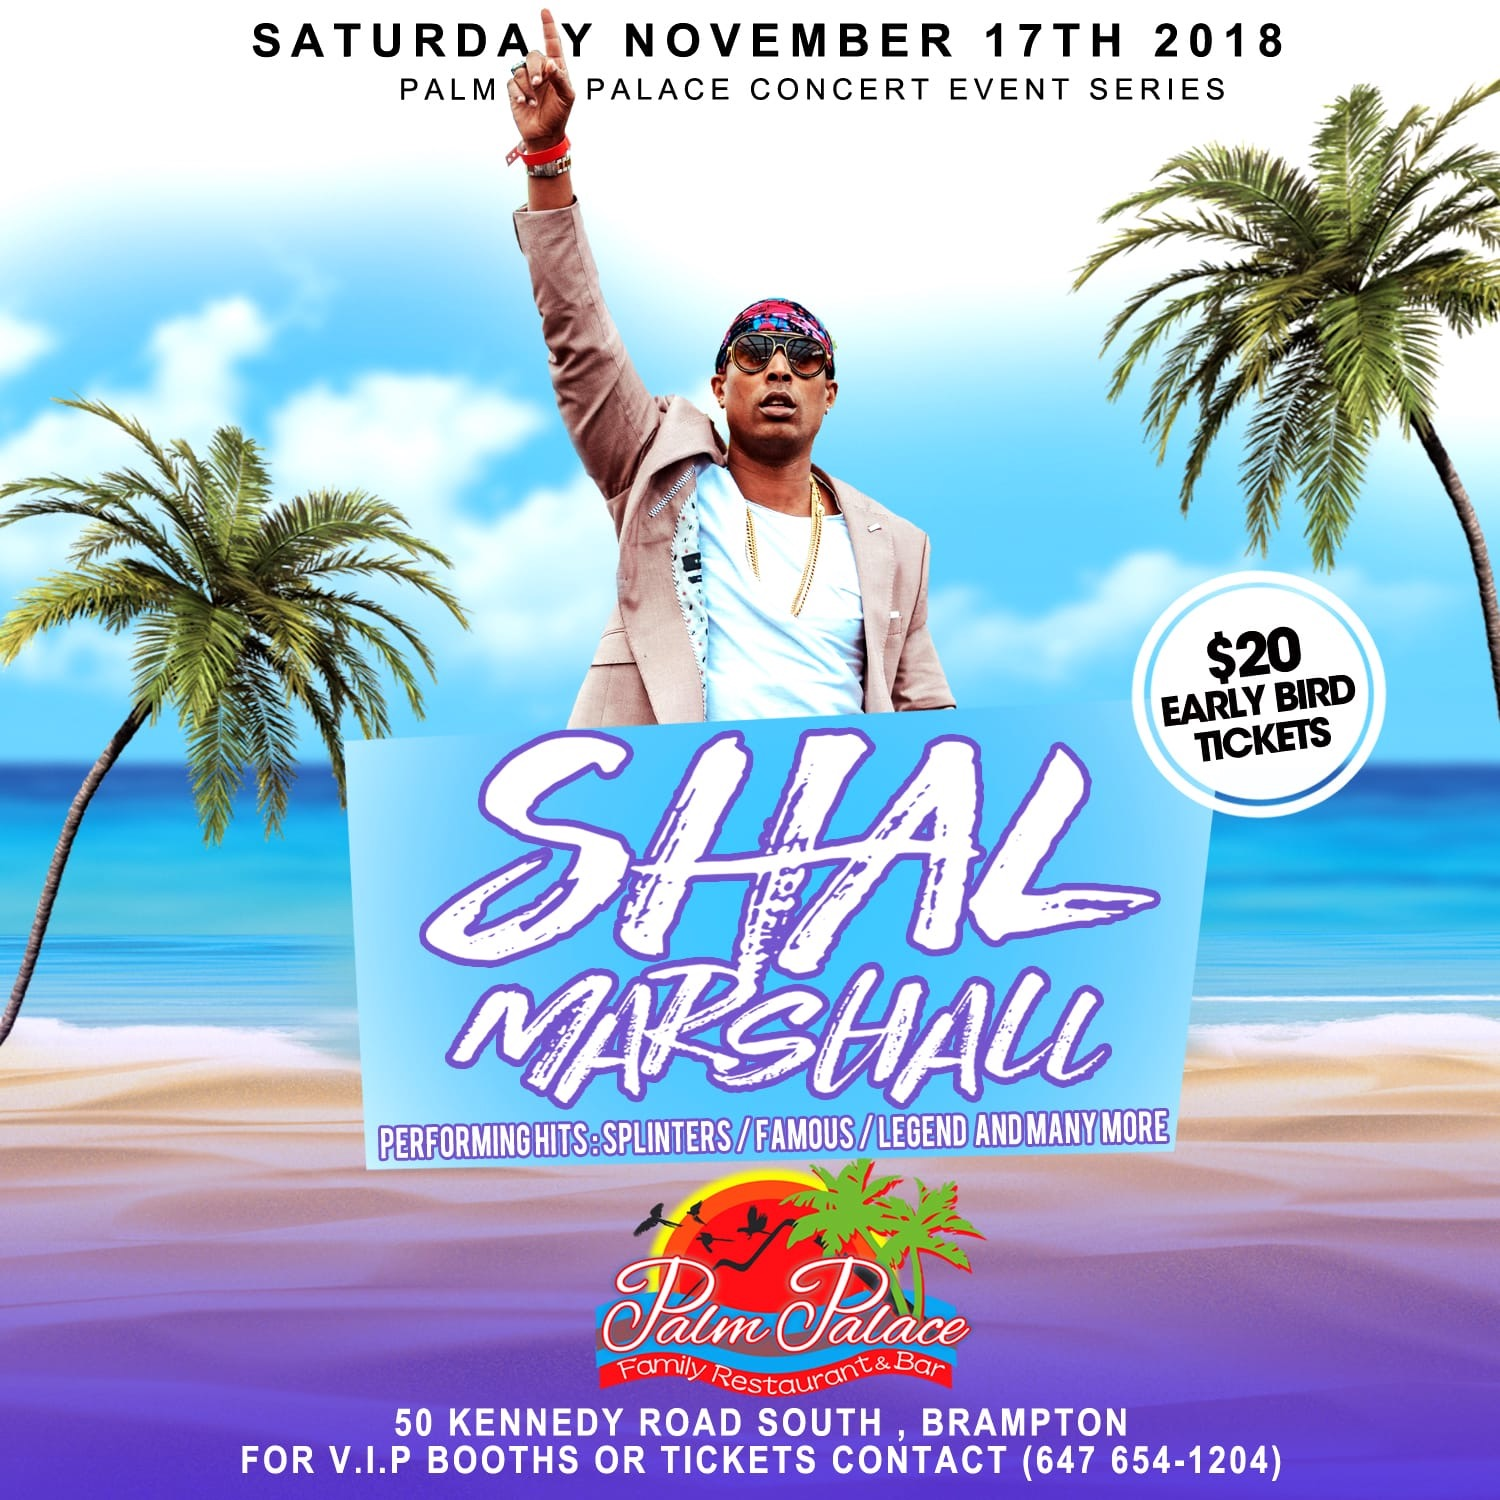 SHAL MARSHALL LIVE IN CONCERT